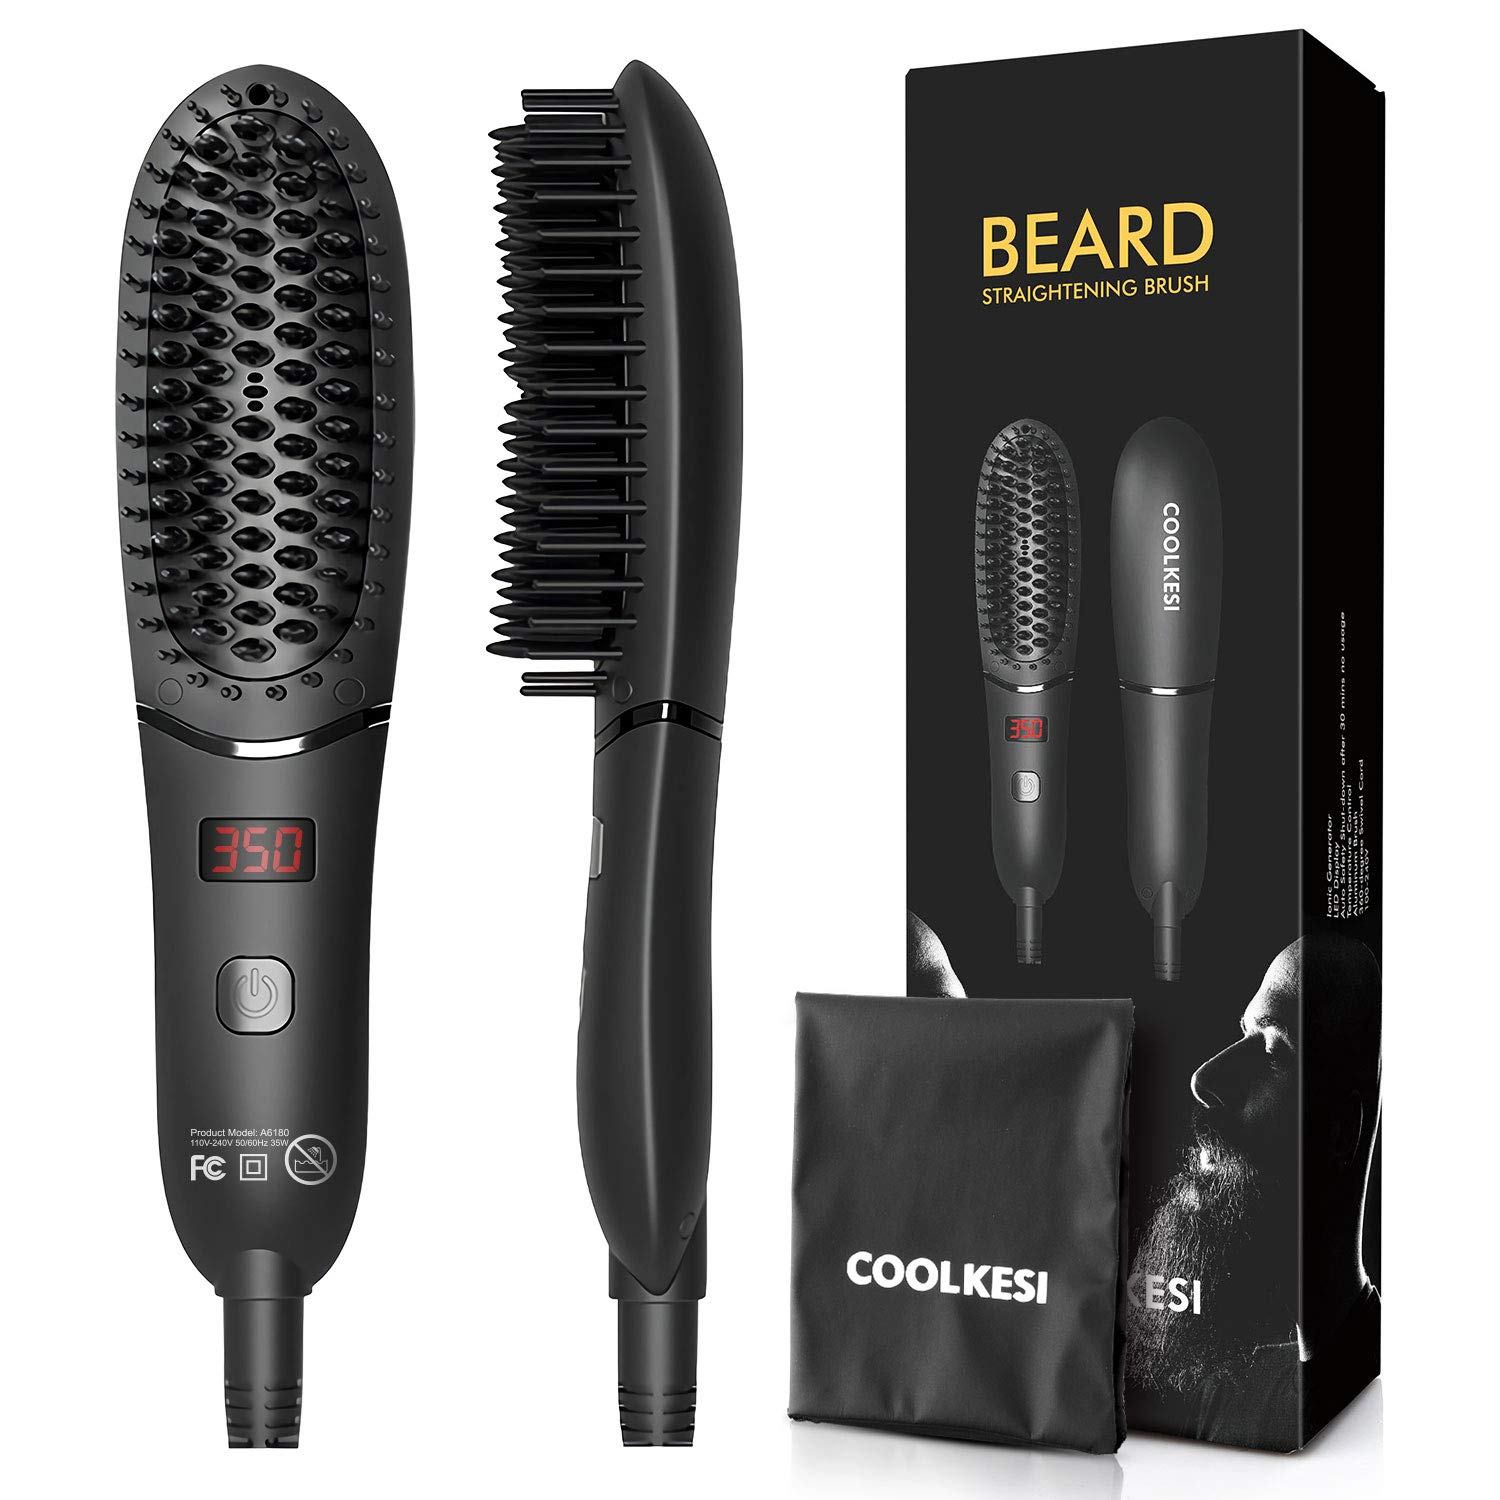 COOLKESI Ionic Beard Straightener for Men, Anti-Scald Hair Straightening Brush with Fast Heating, Portable Ceramic Heat Brush Comb for Home or Travel, Electric Dual Voltage& LED Adjustable Temp